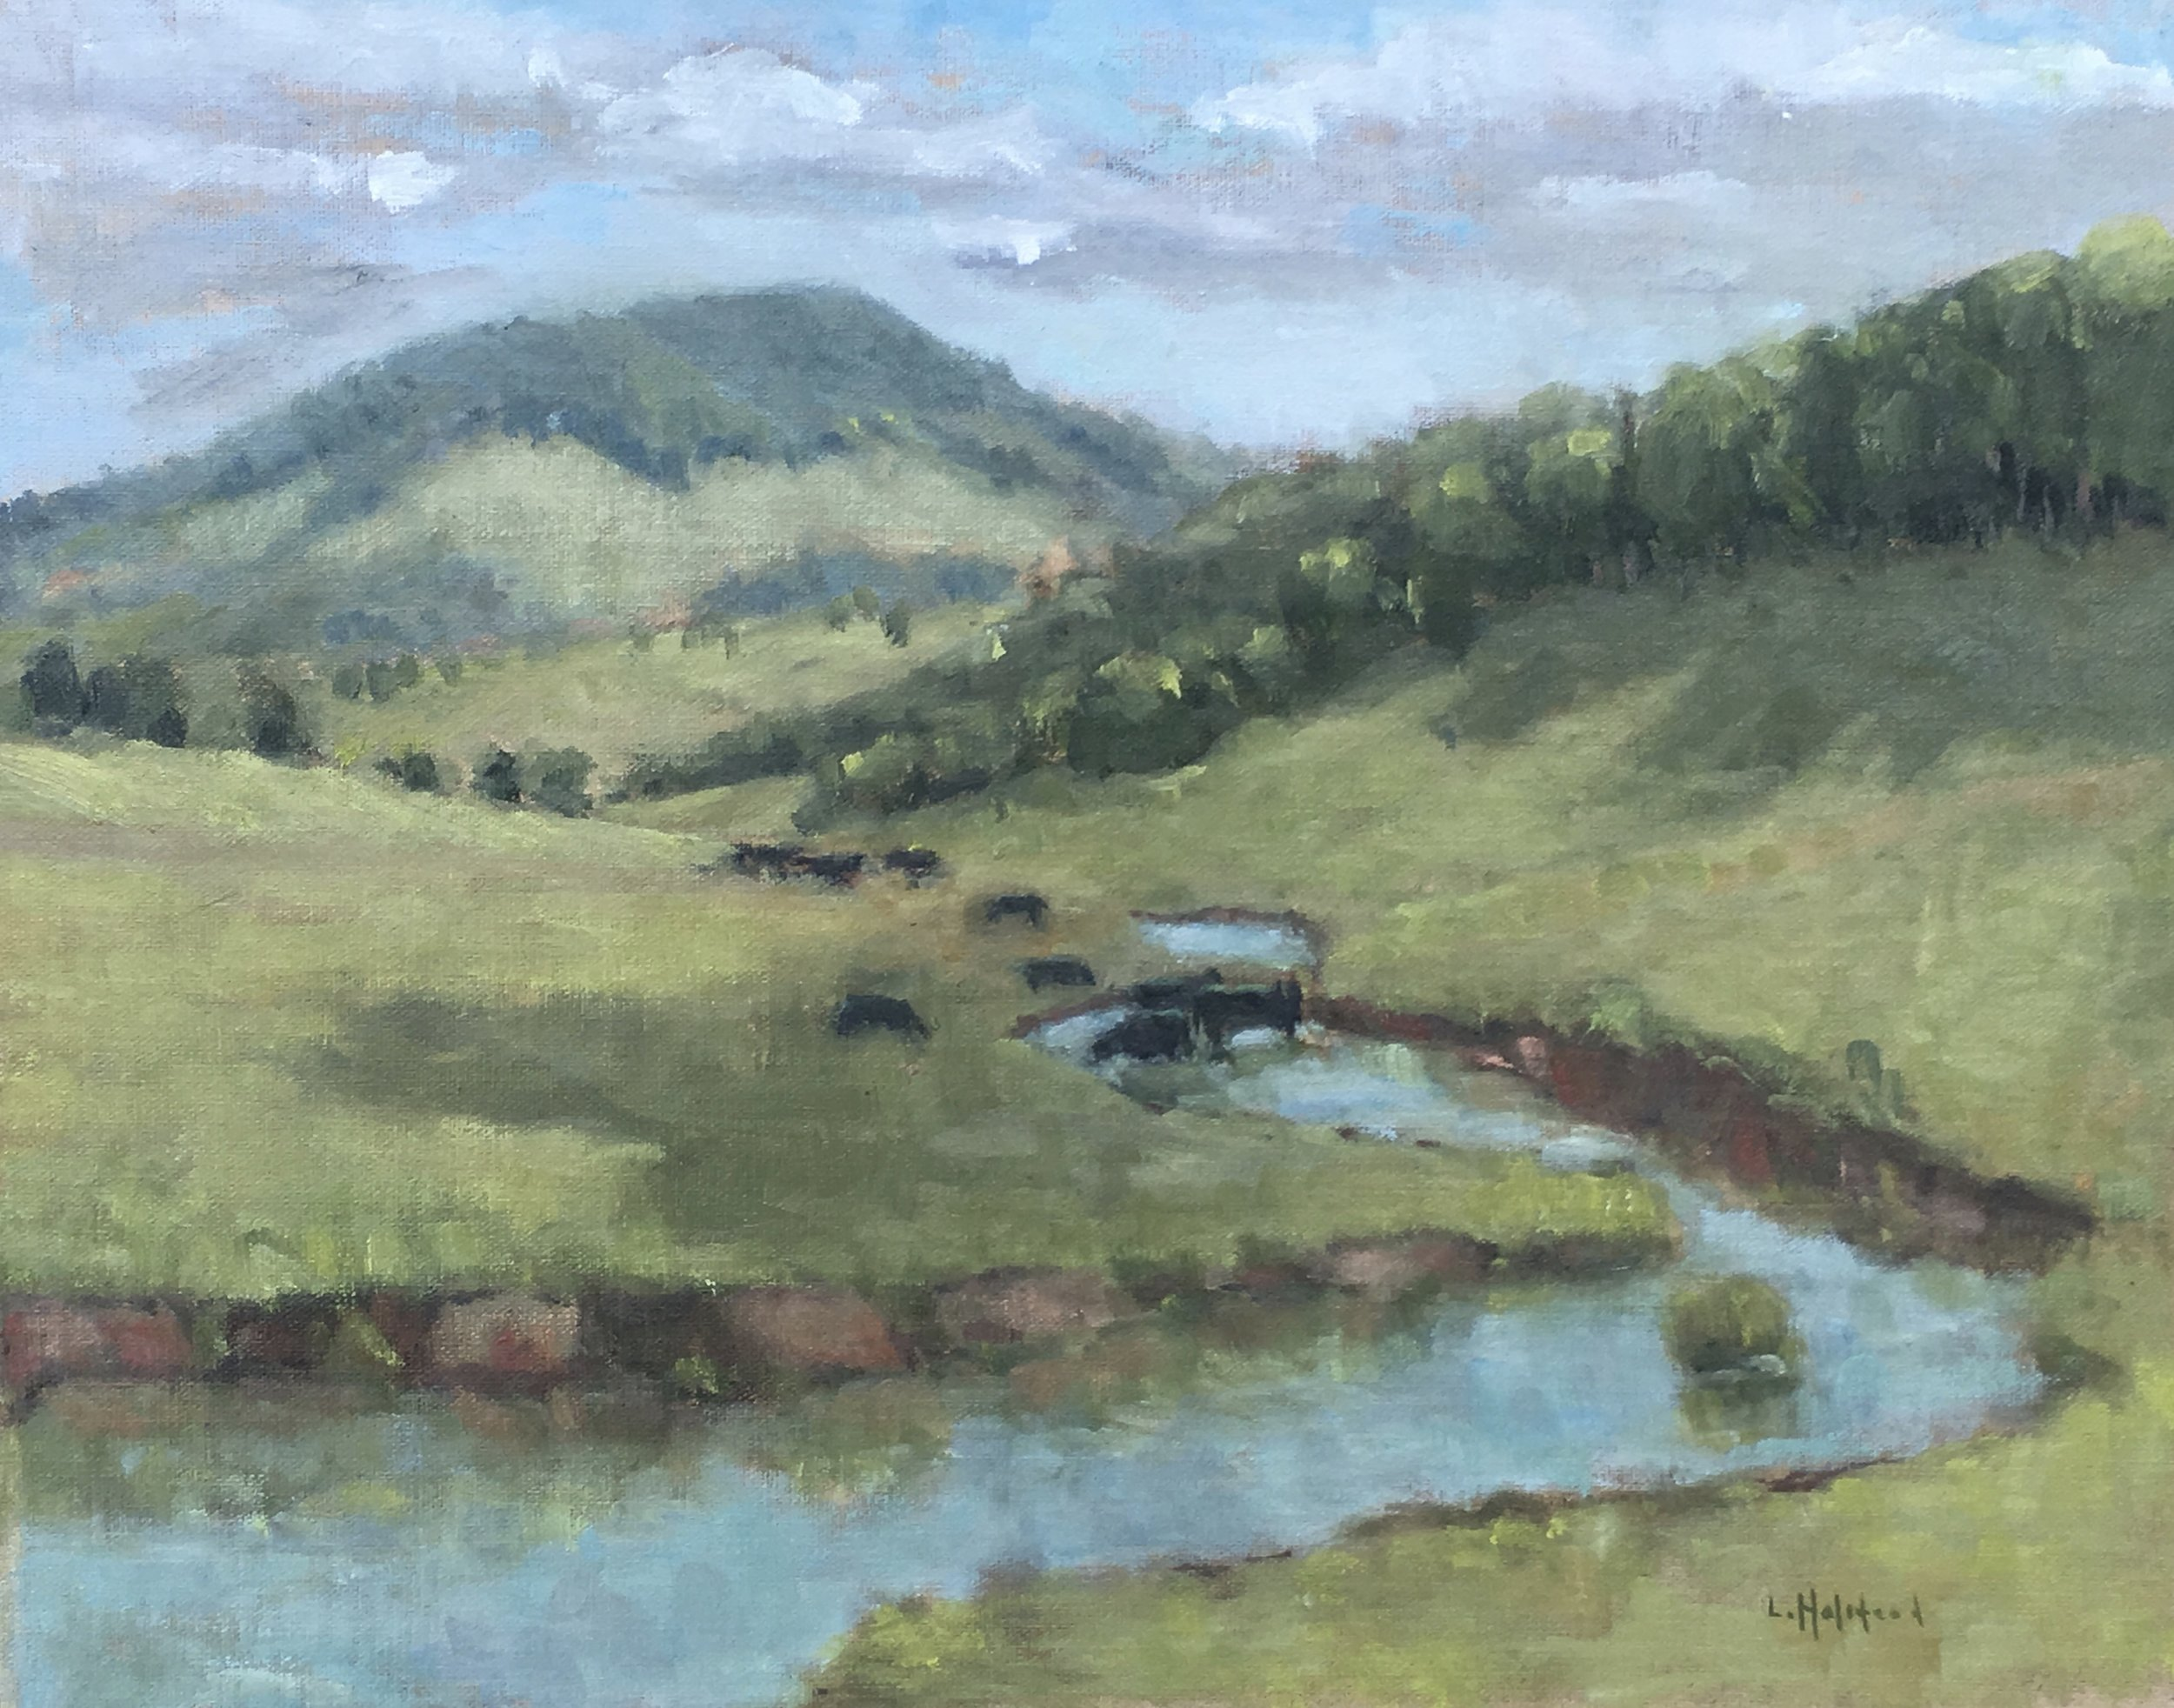 Potomac Headwaters, Oil on Linen, 11 x 14, sold